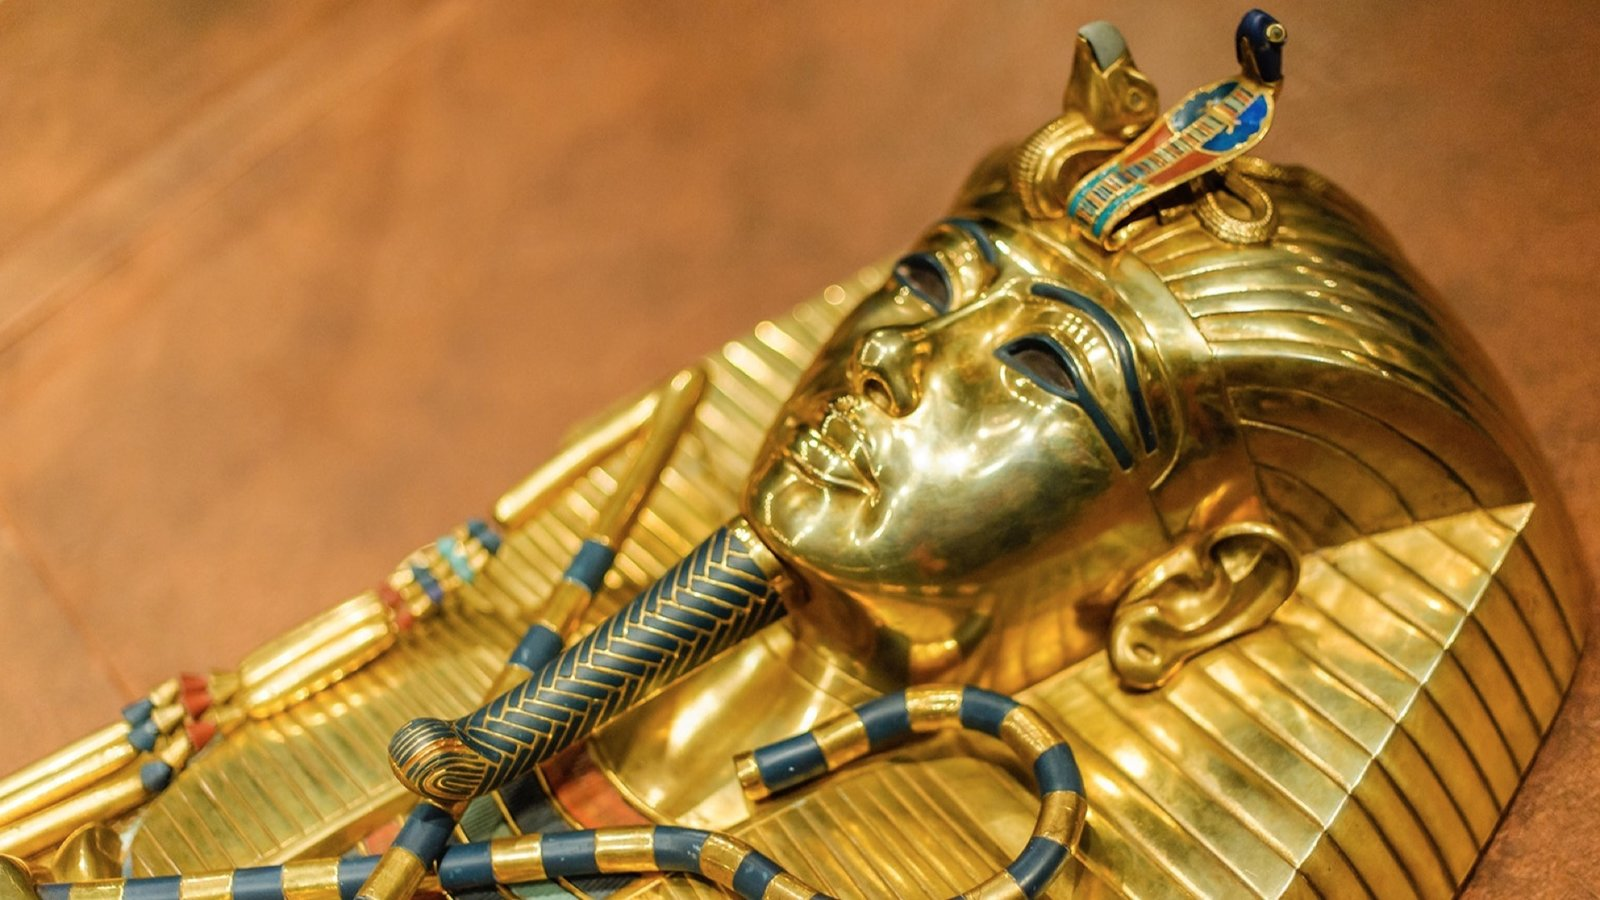 King Tut's Magic Mirror and Sarcophagus